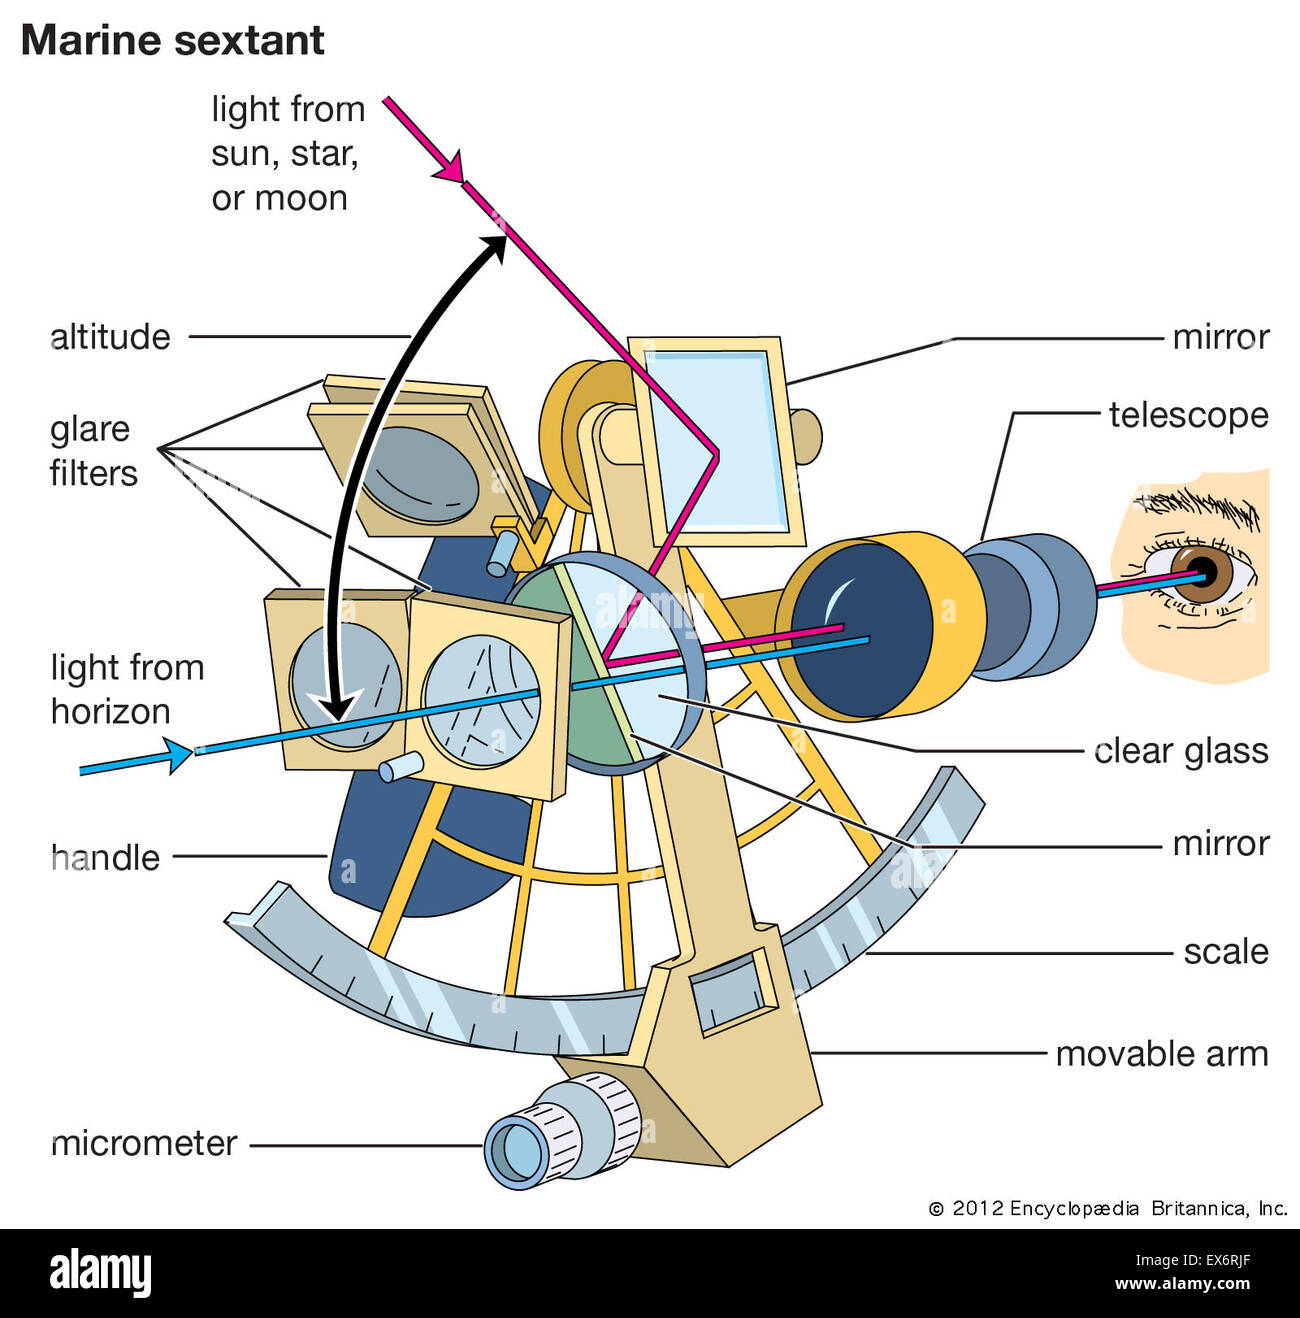 hight resolution of navigation marine sextant